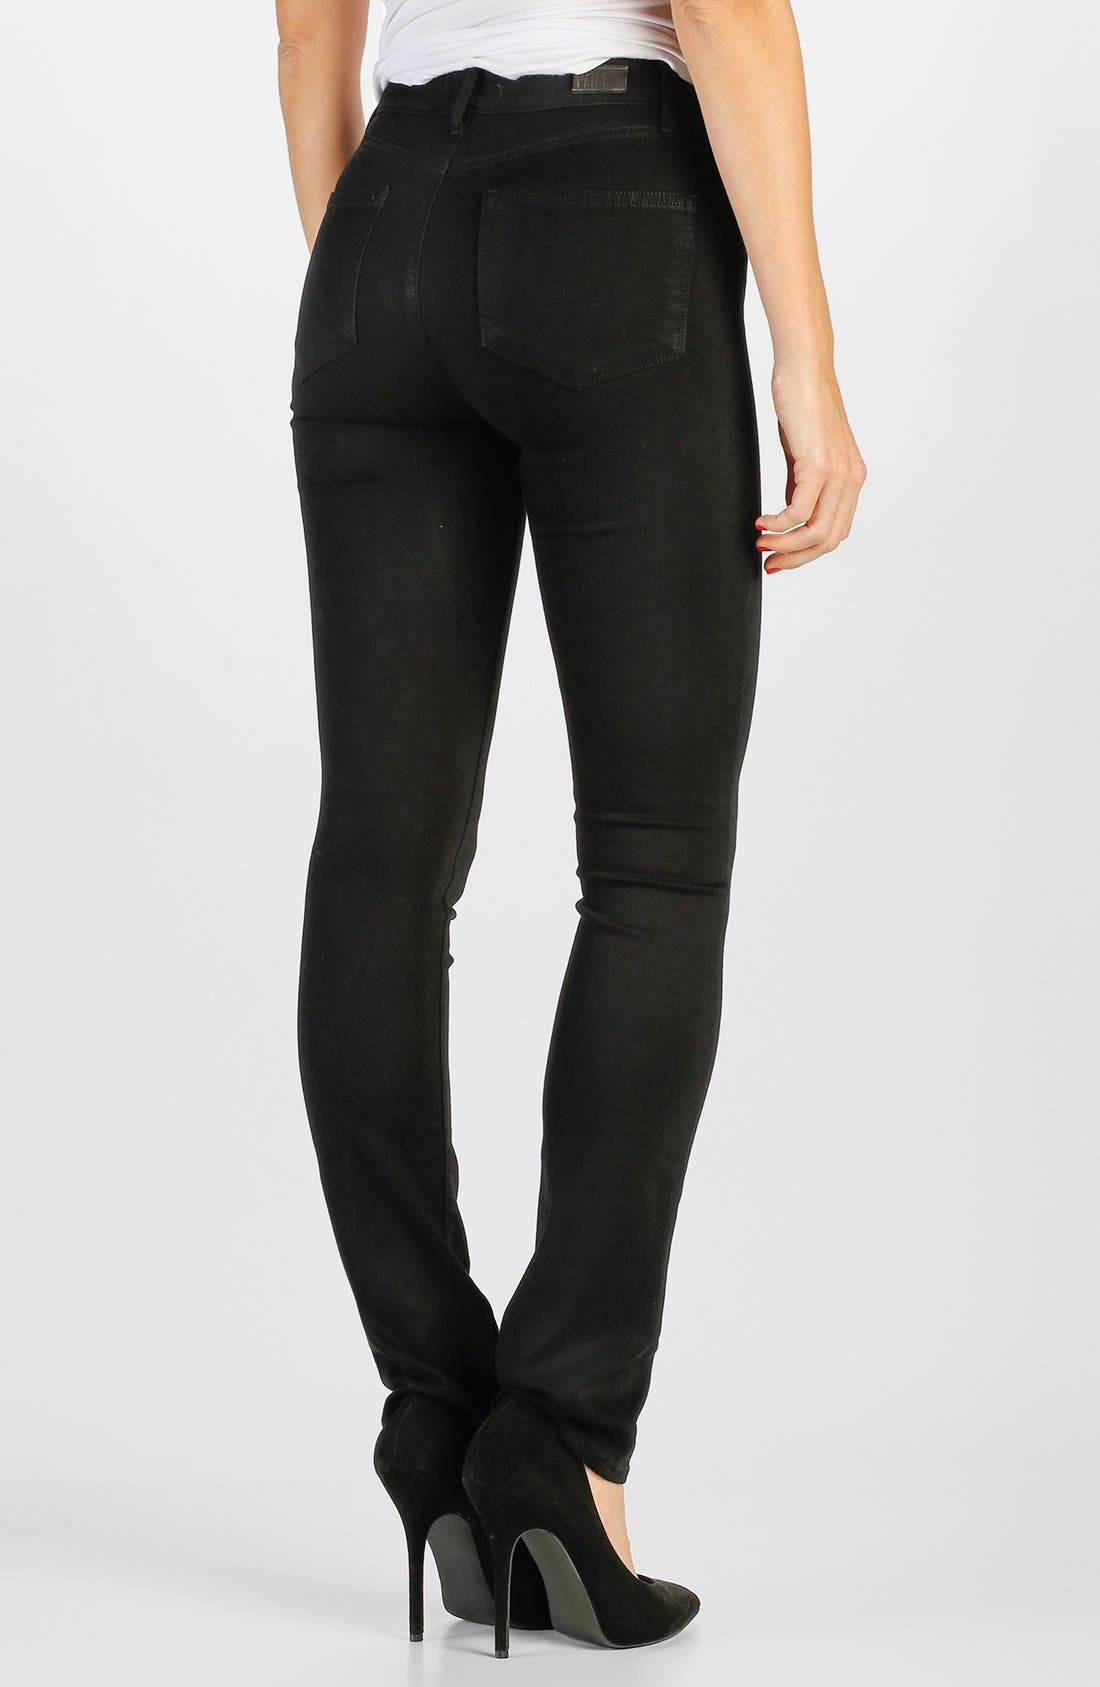 Transcend - Hoxton High Waist Straight Leg Jeans,                             Alternate thumbnail 2, color,                             Black Shadow